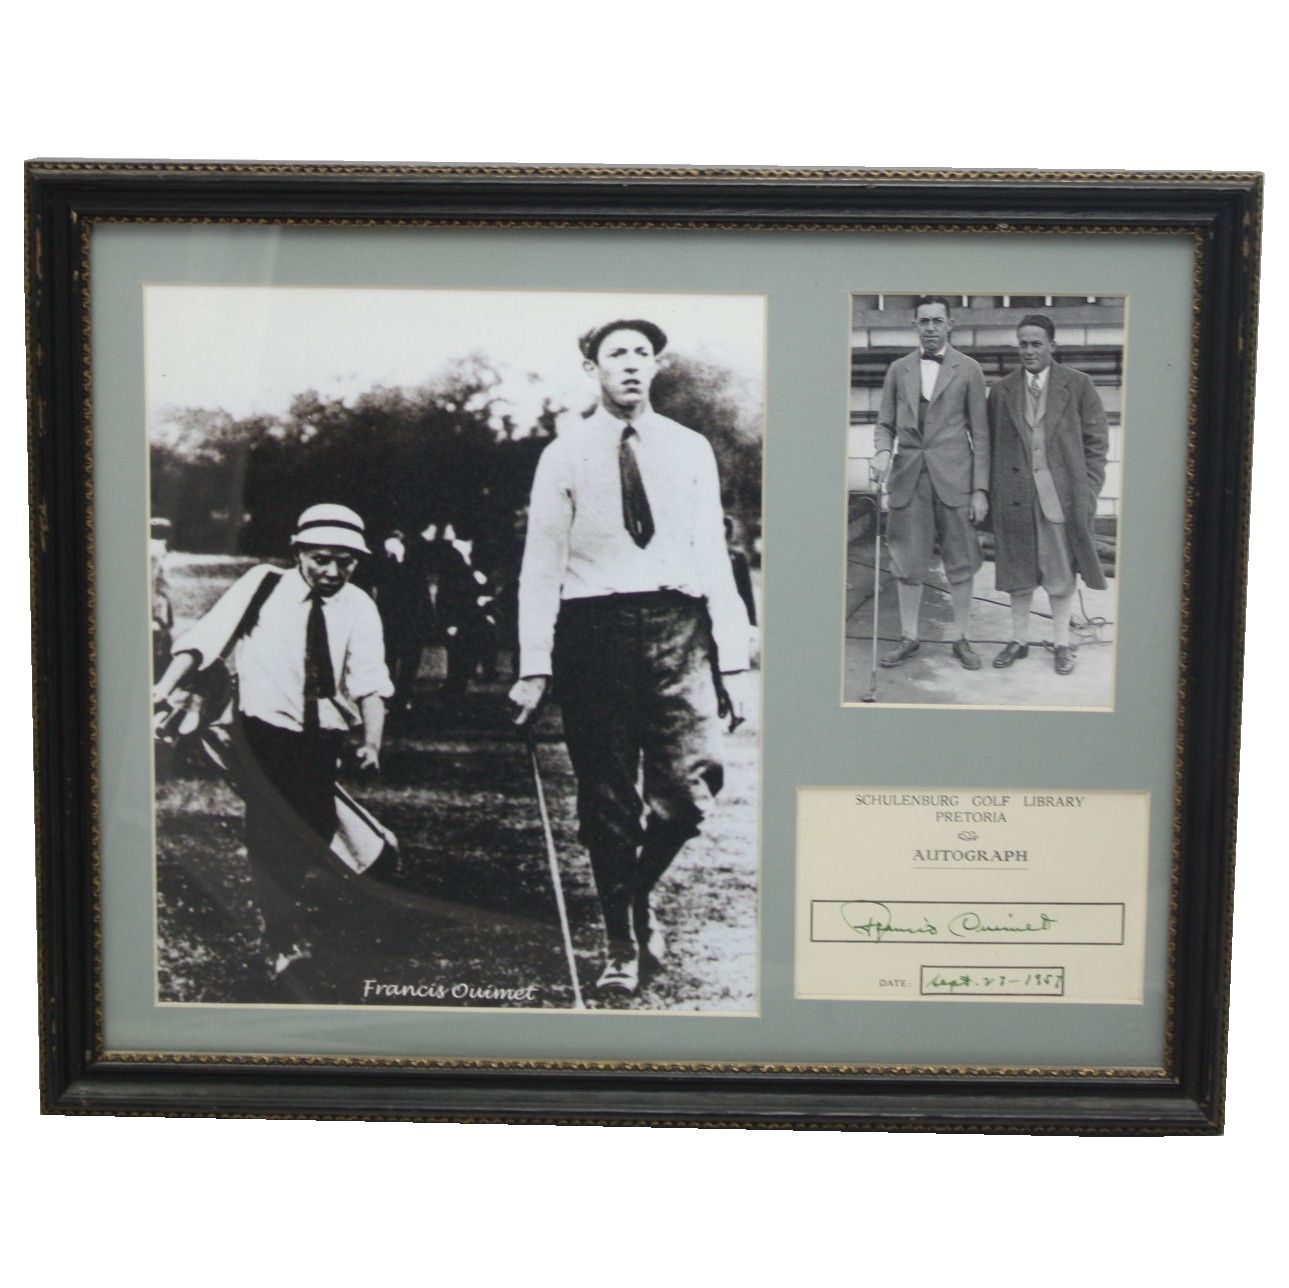 Lot detail francis ouimet framed autograph sourced from francis ouimet framed autograph sourced from collection of mark emerson jsa coa jeuxipadfo Choice Image